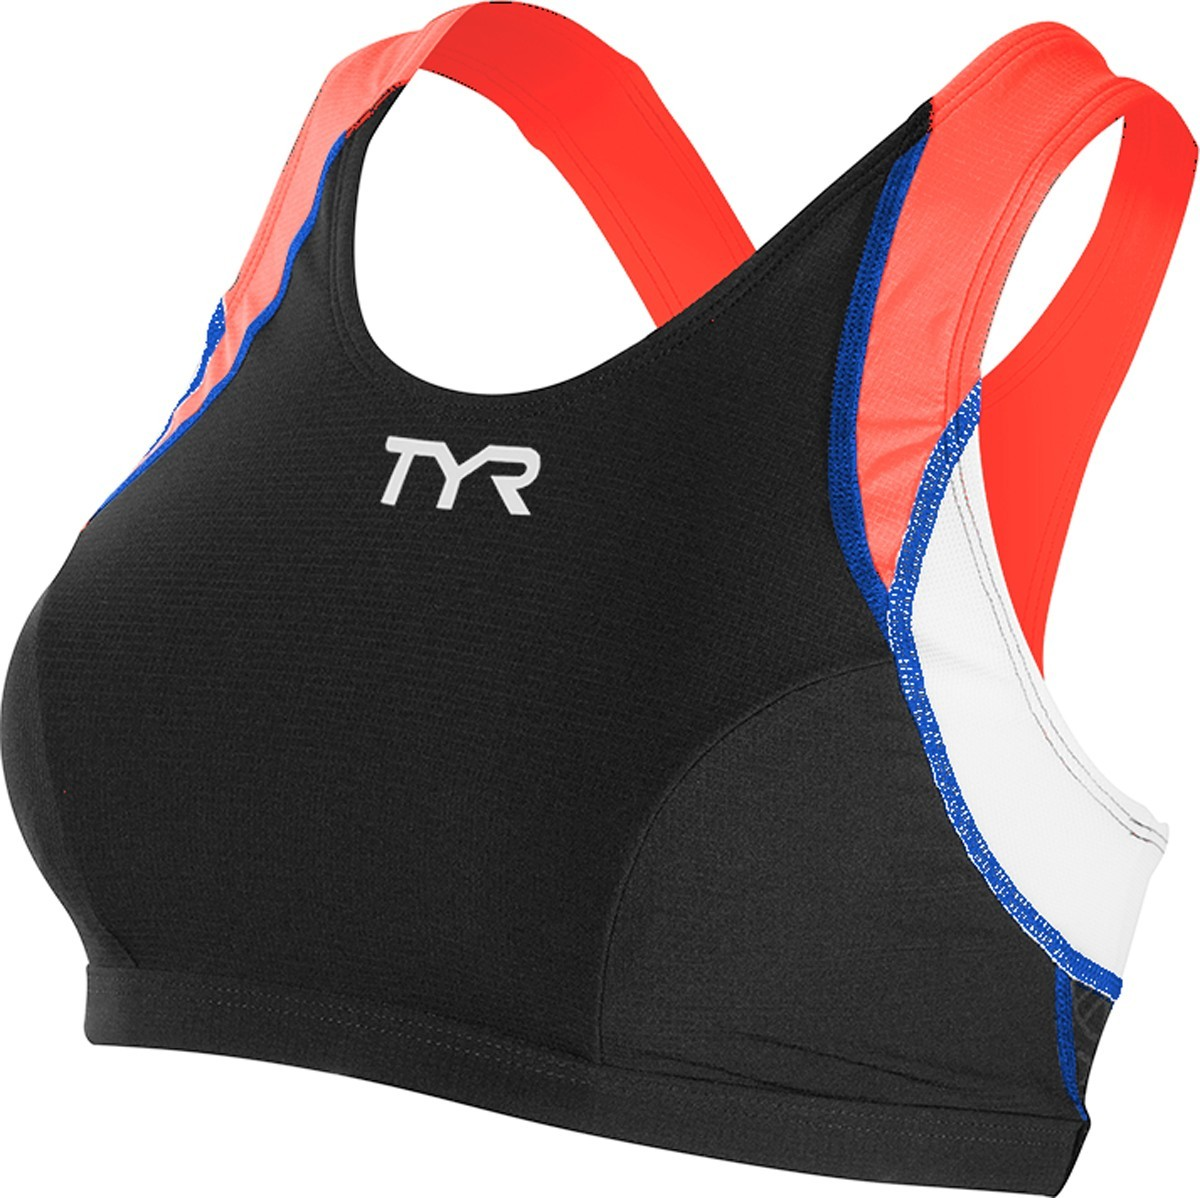 TYR Competitor Support Bra Triathlon Top Women's Size L Black Coral Blue U.S.A. & Canada